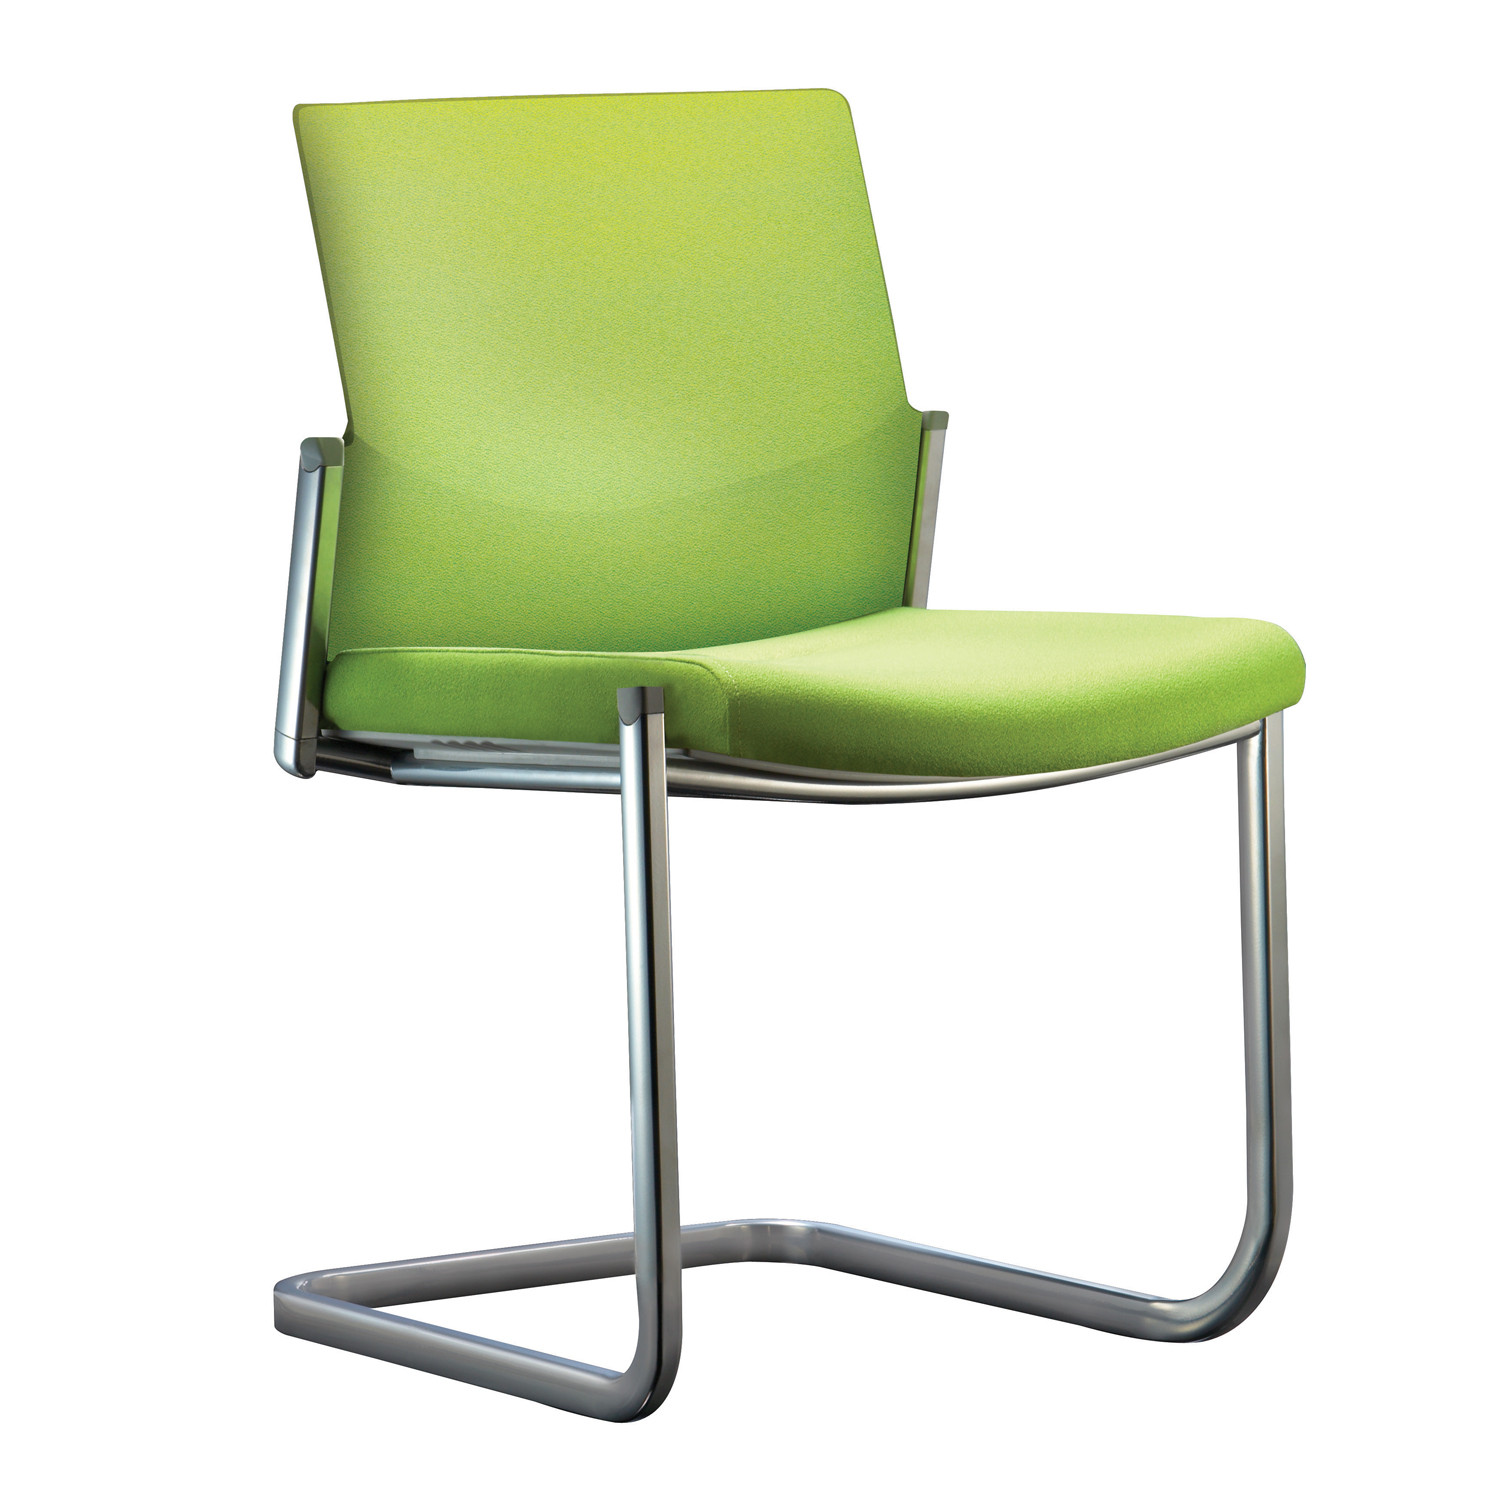 Connection IS Cantilever Chair